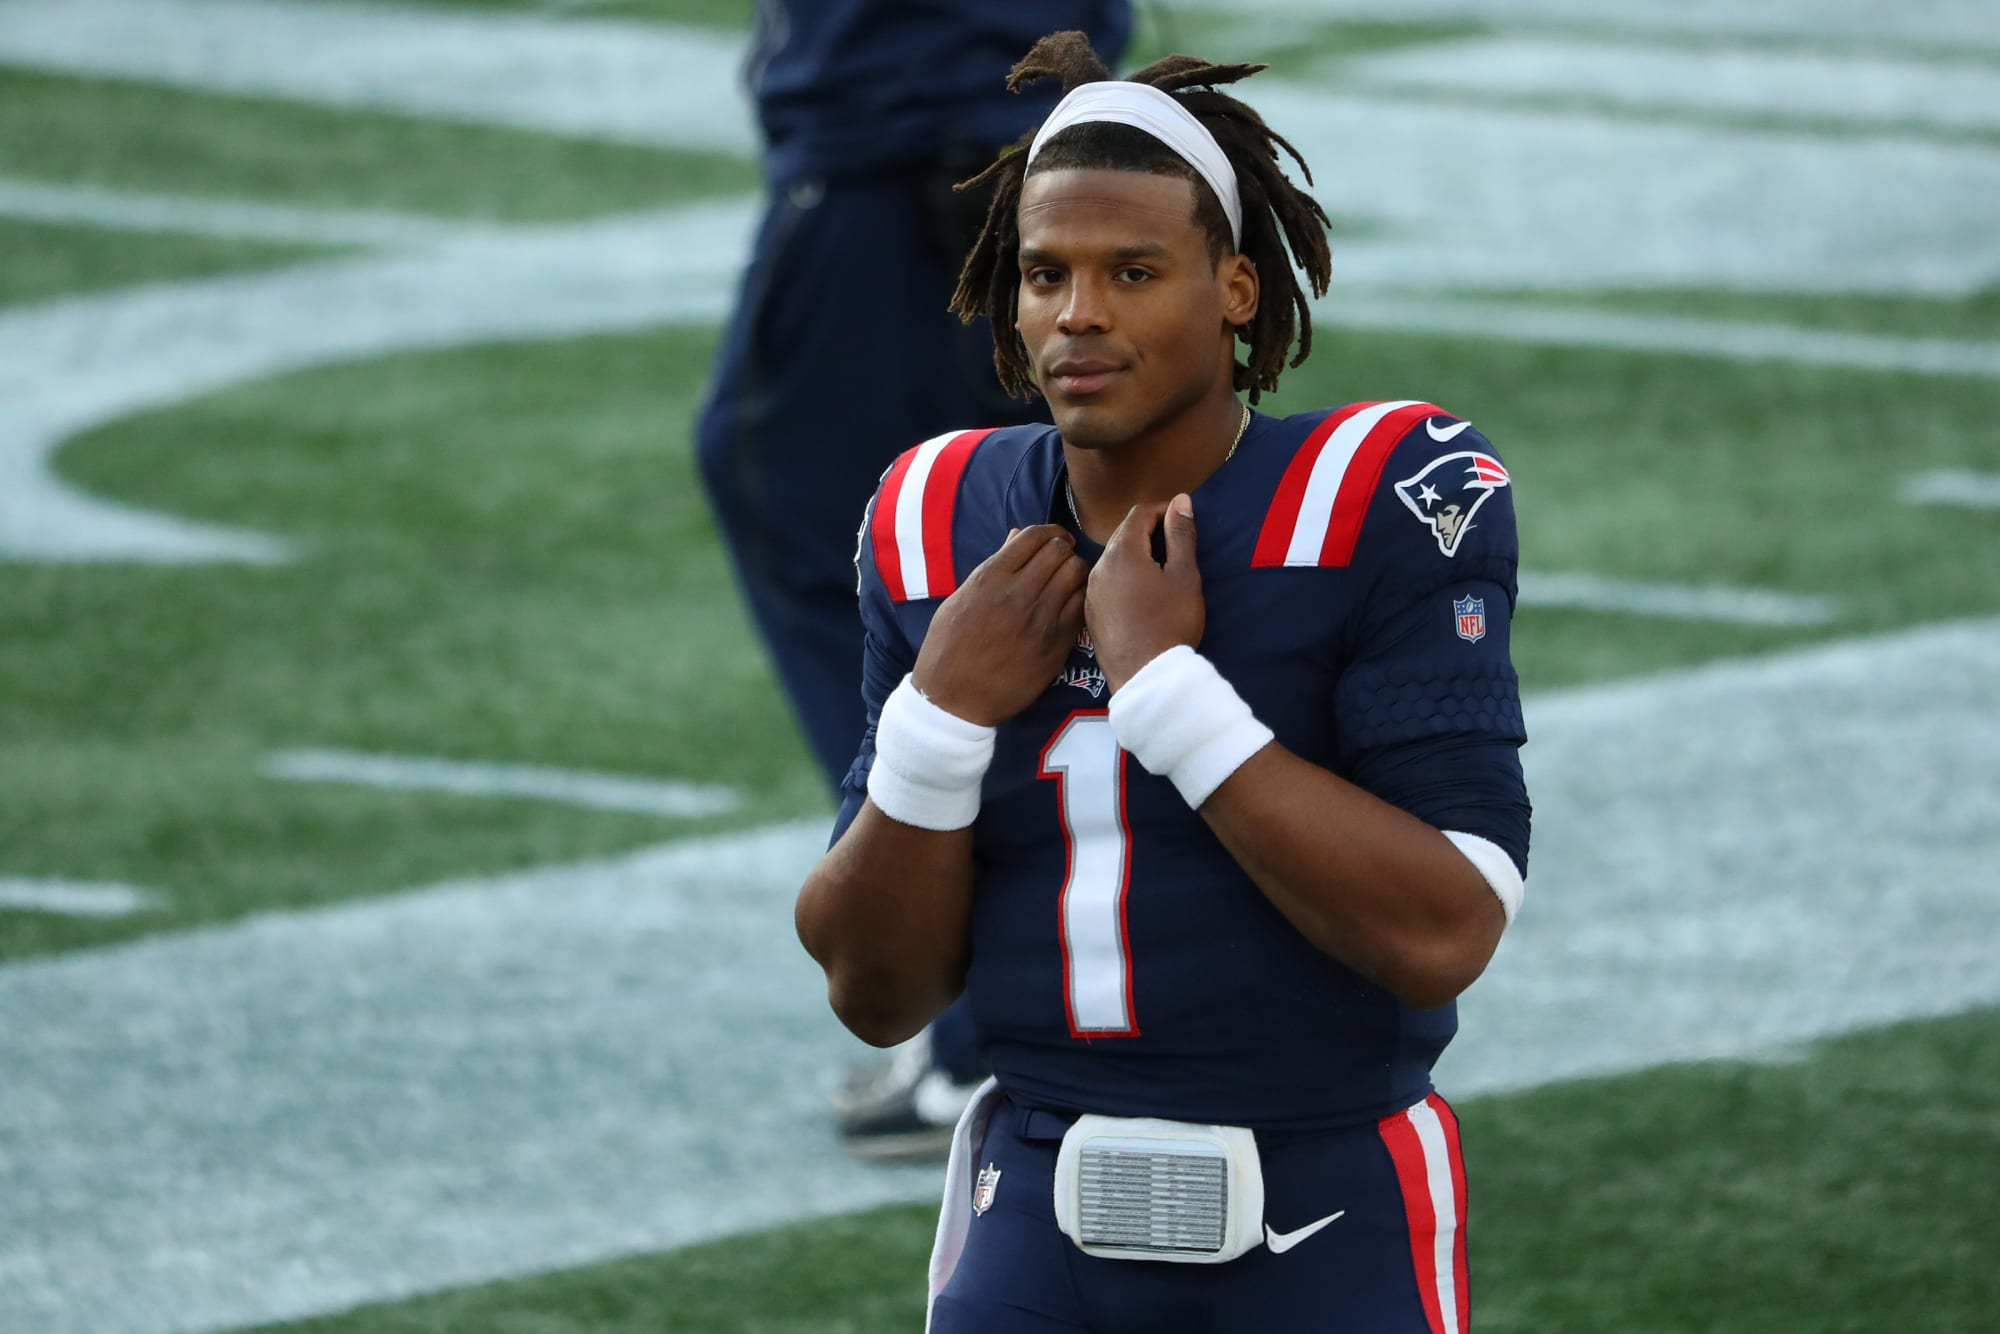 Cam Newton looks on at a game during his time with the New England Patriots